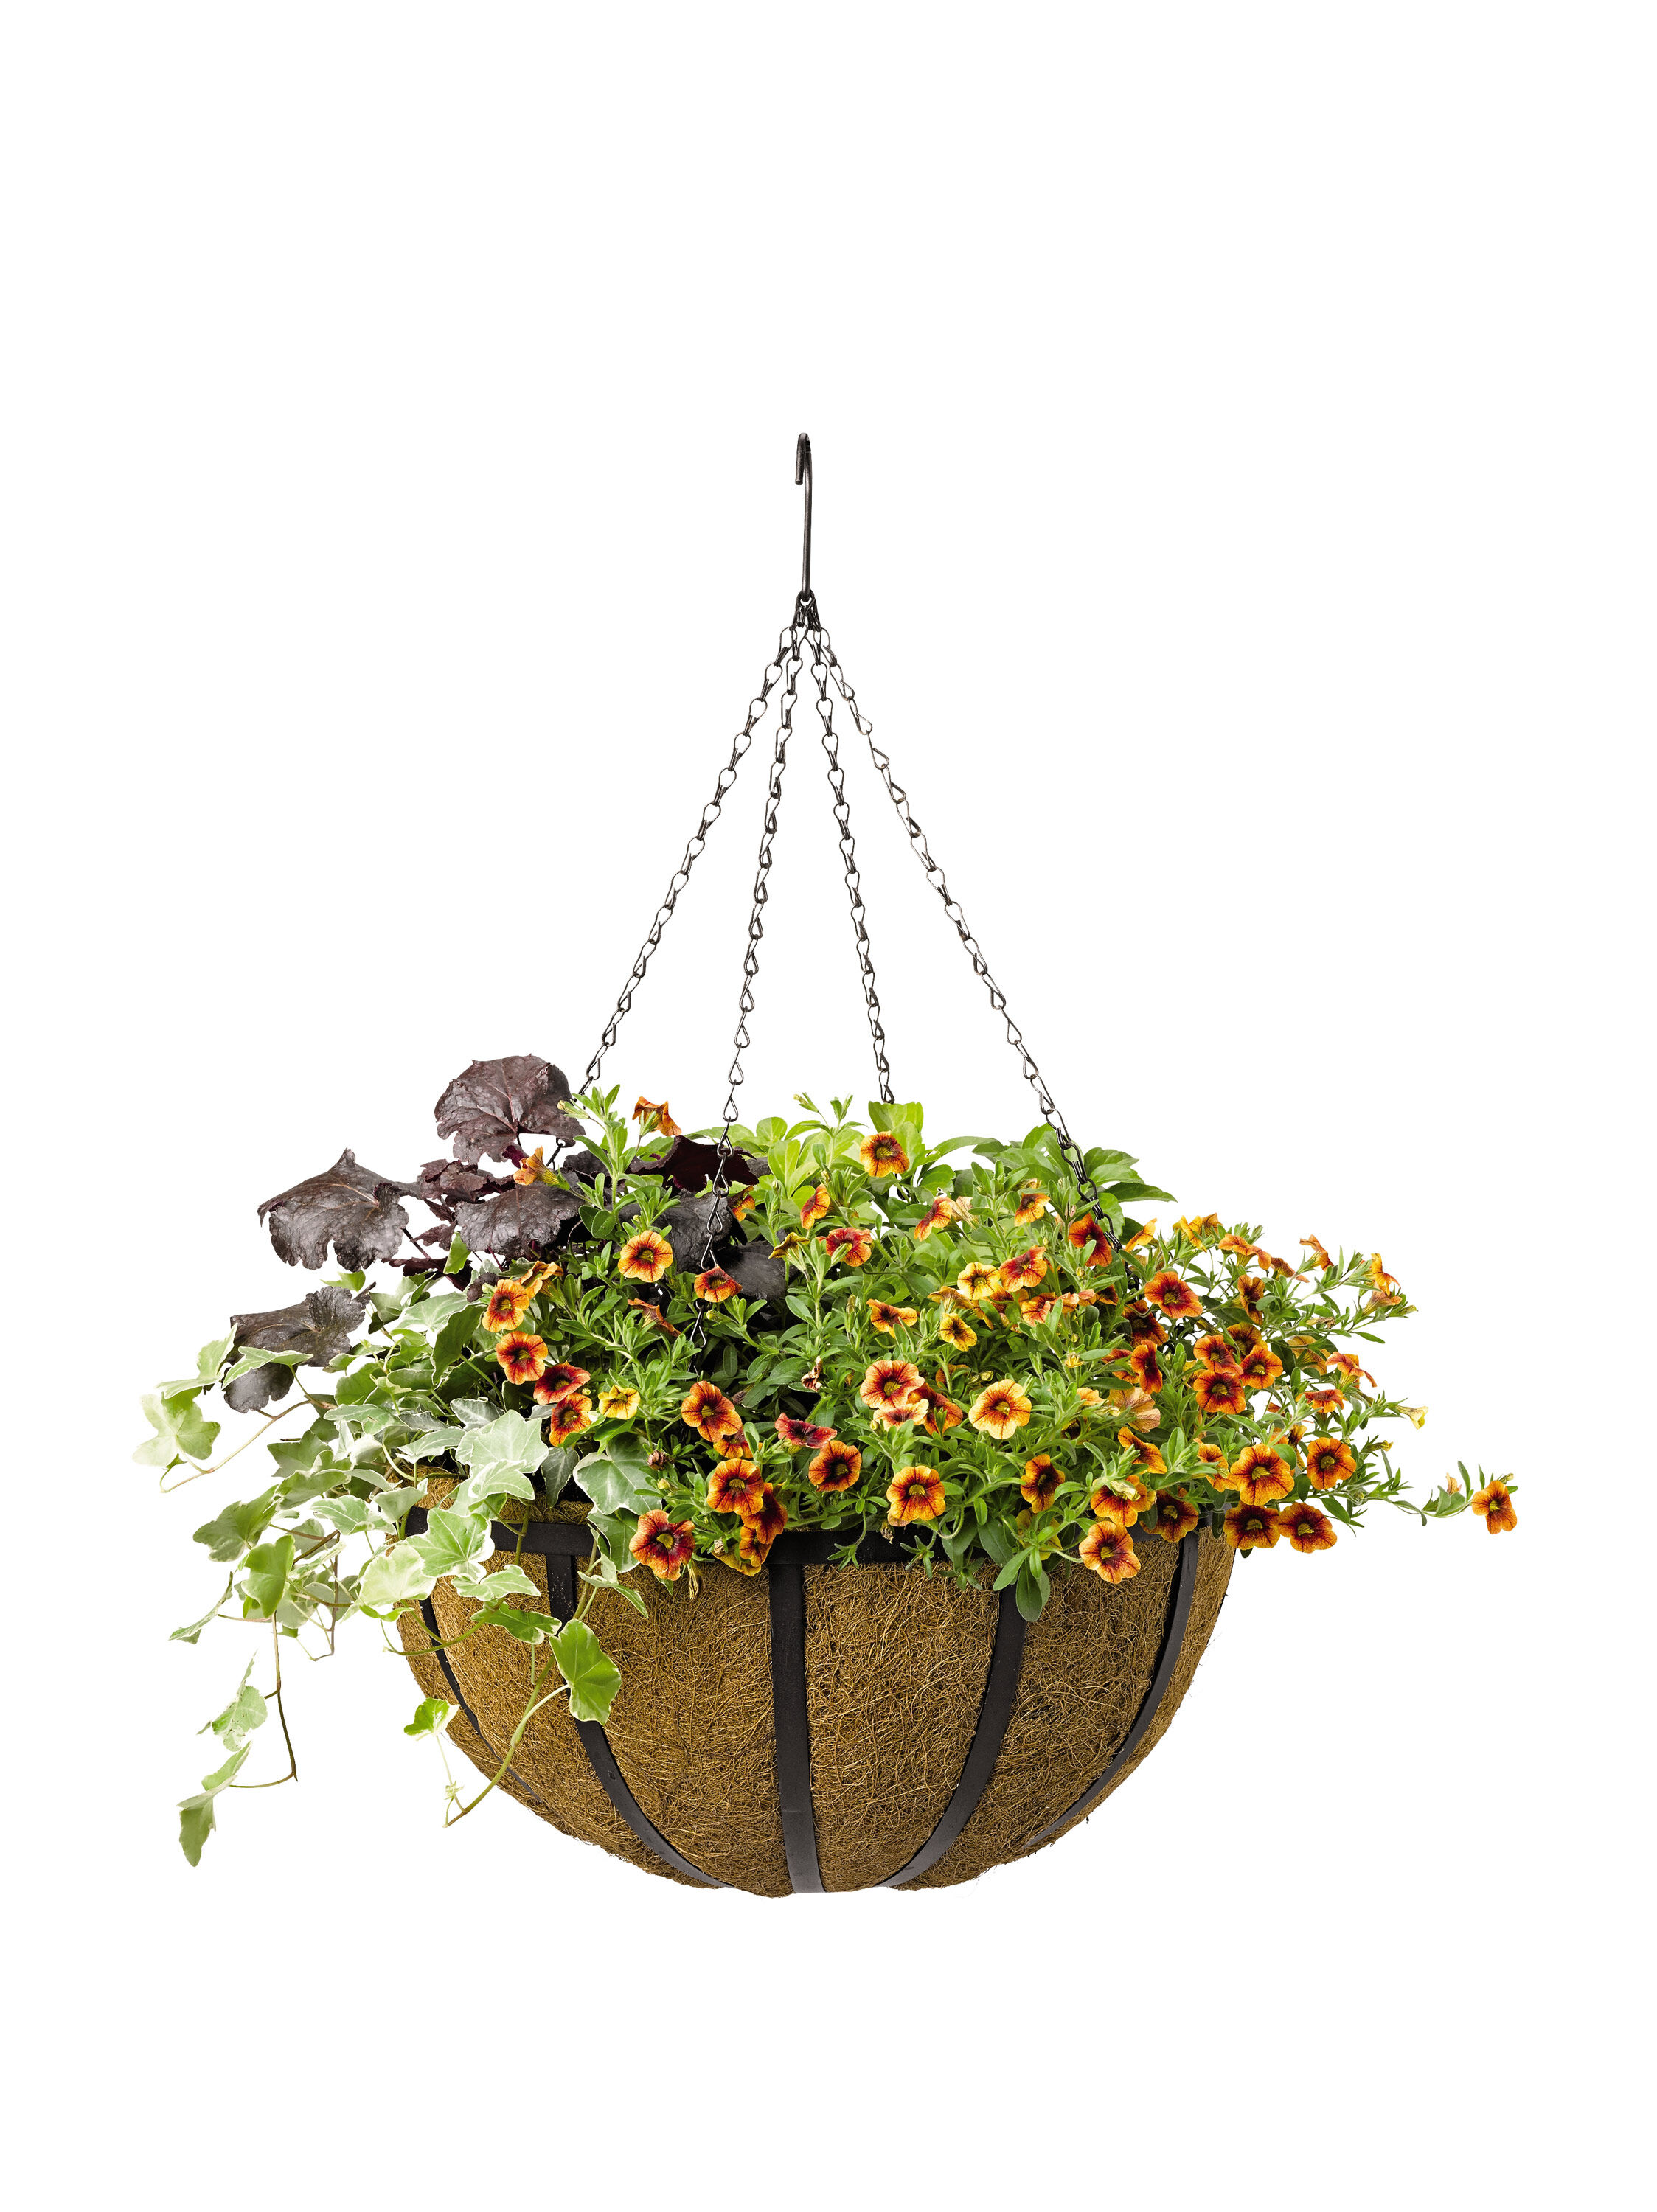 Flowers For Baskets For Hanging : Hanging baskets for plants and flowers self watering